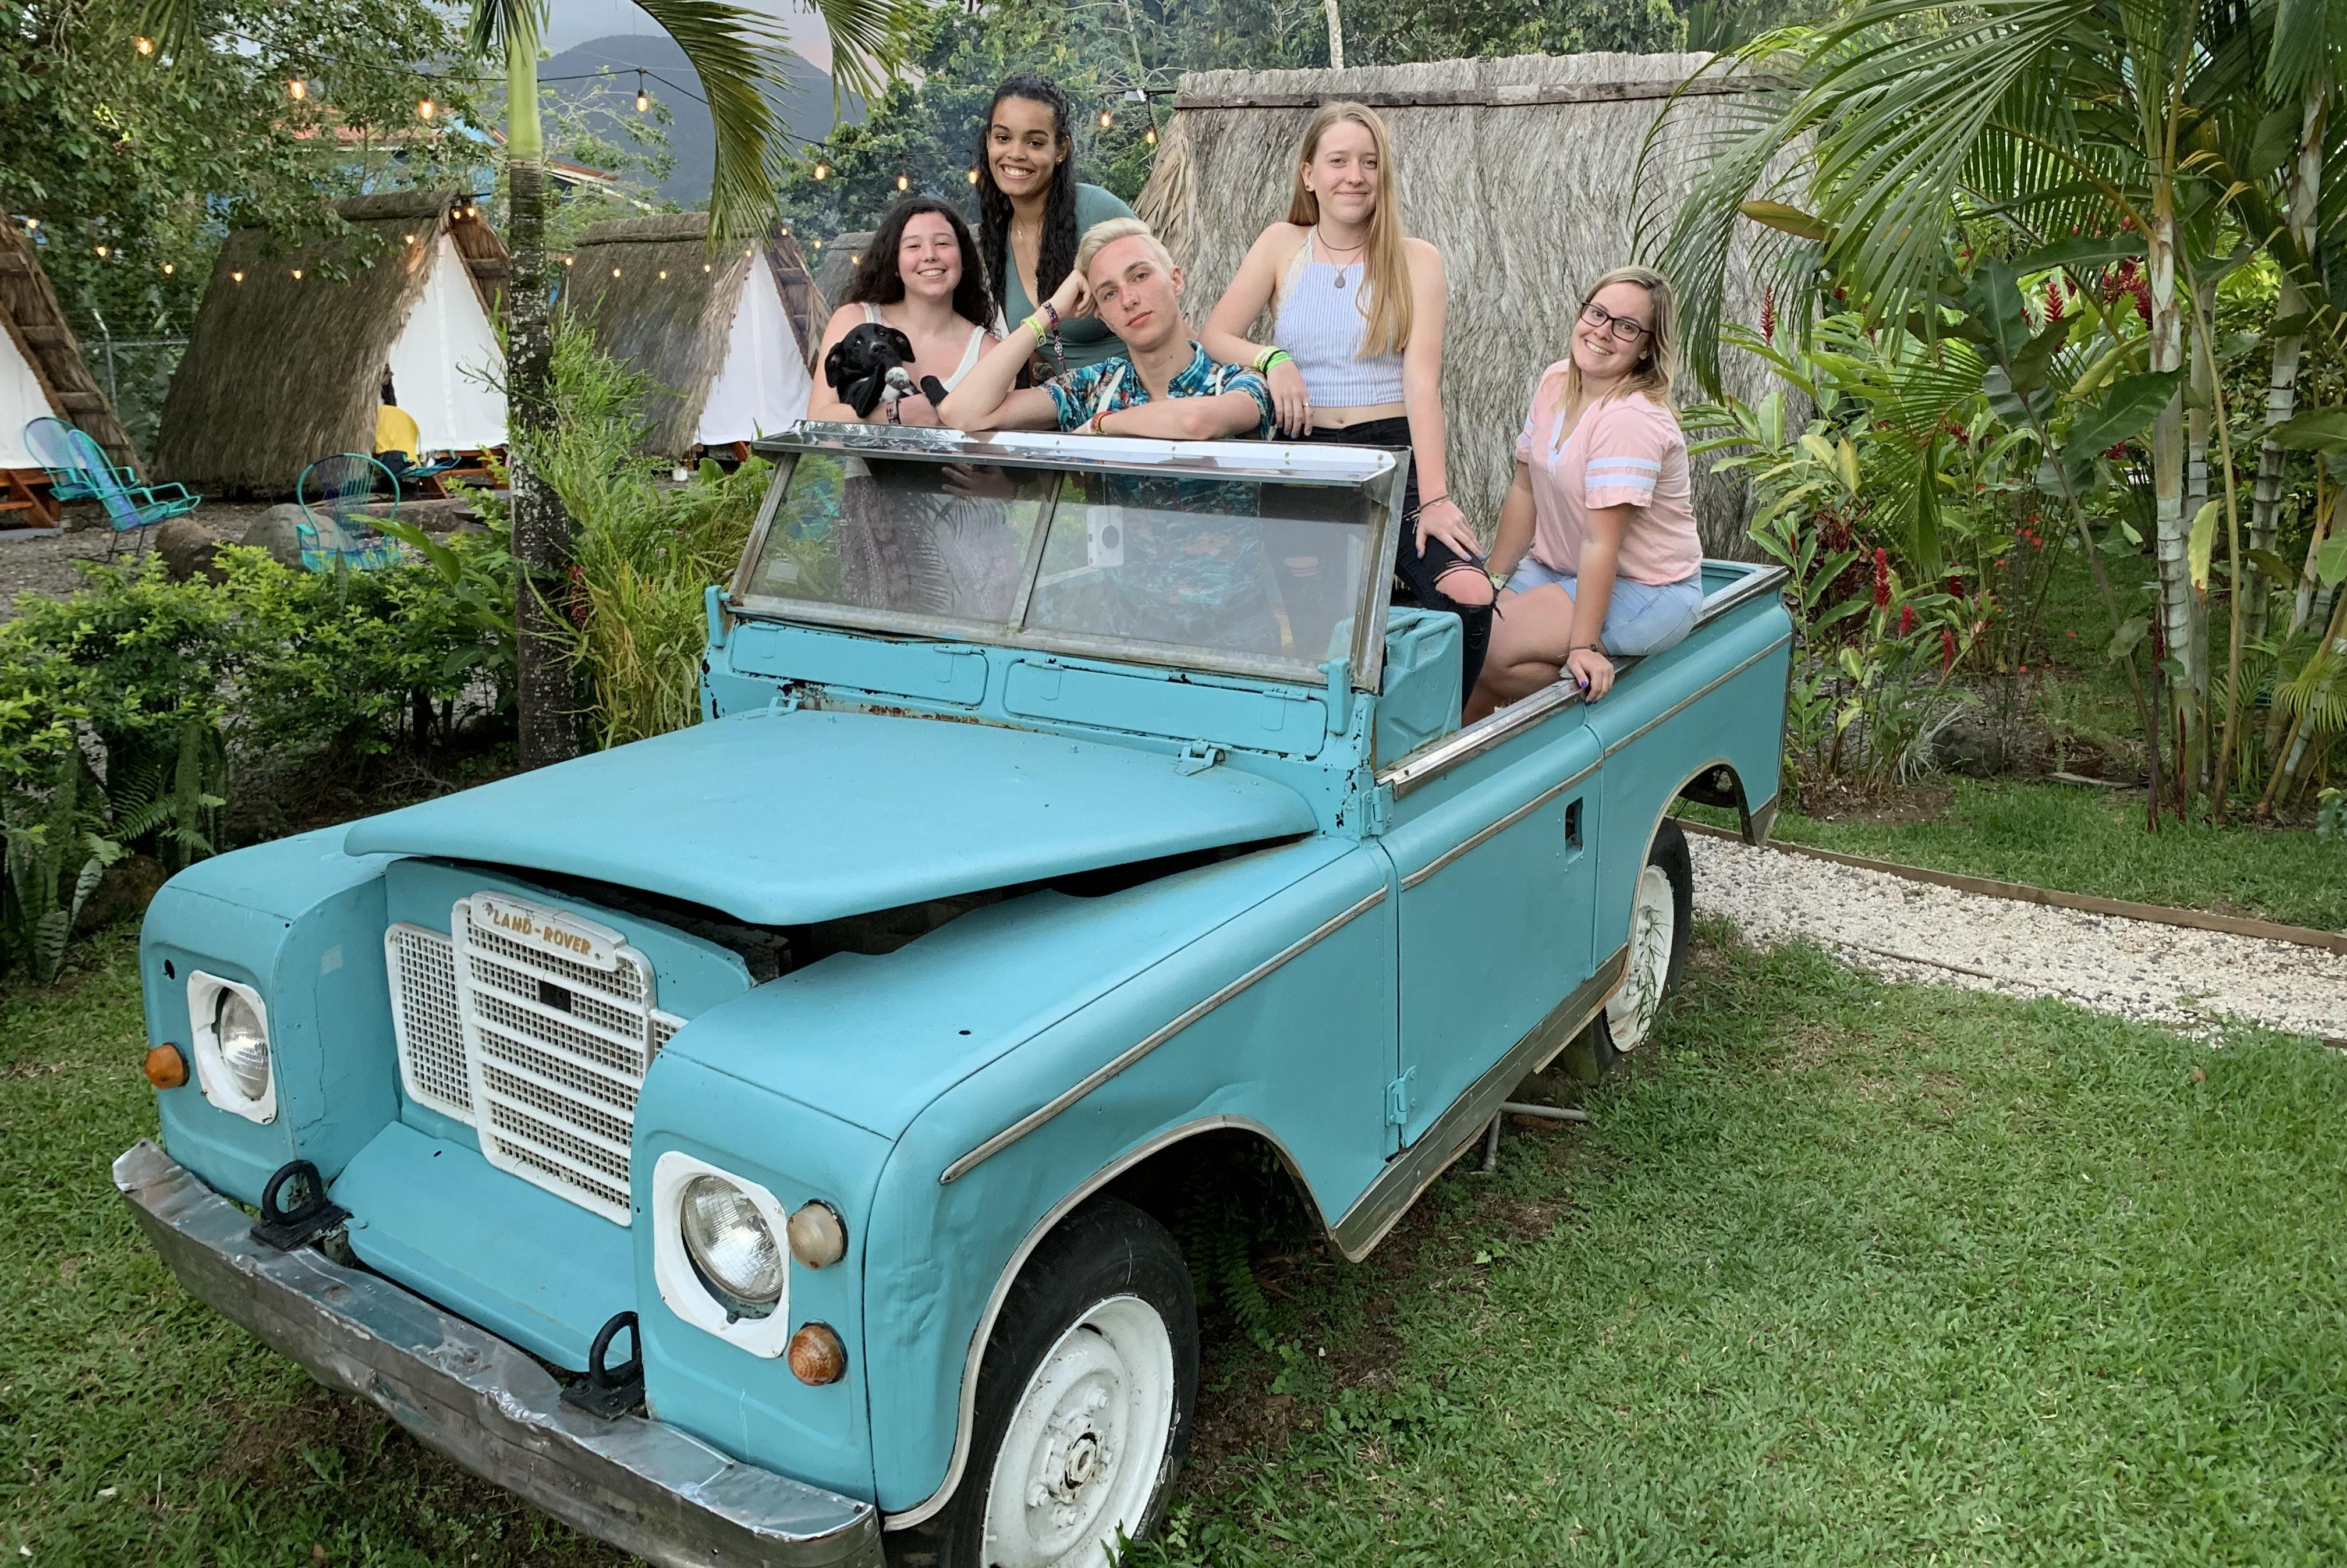 Five students in a teal vehicle in Costa Rica